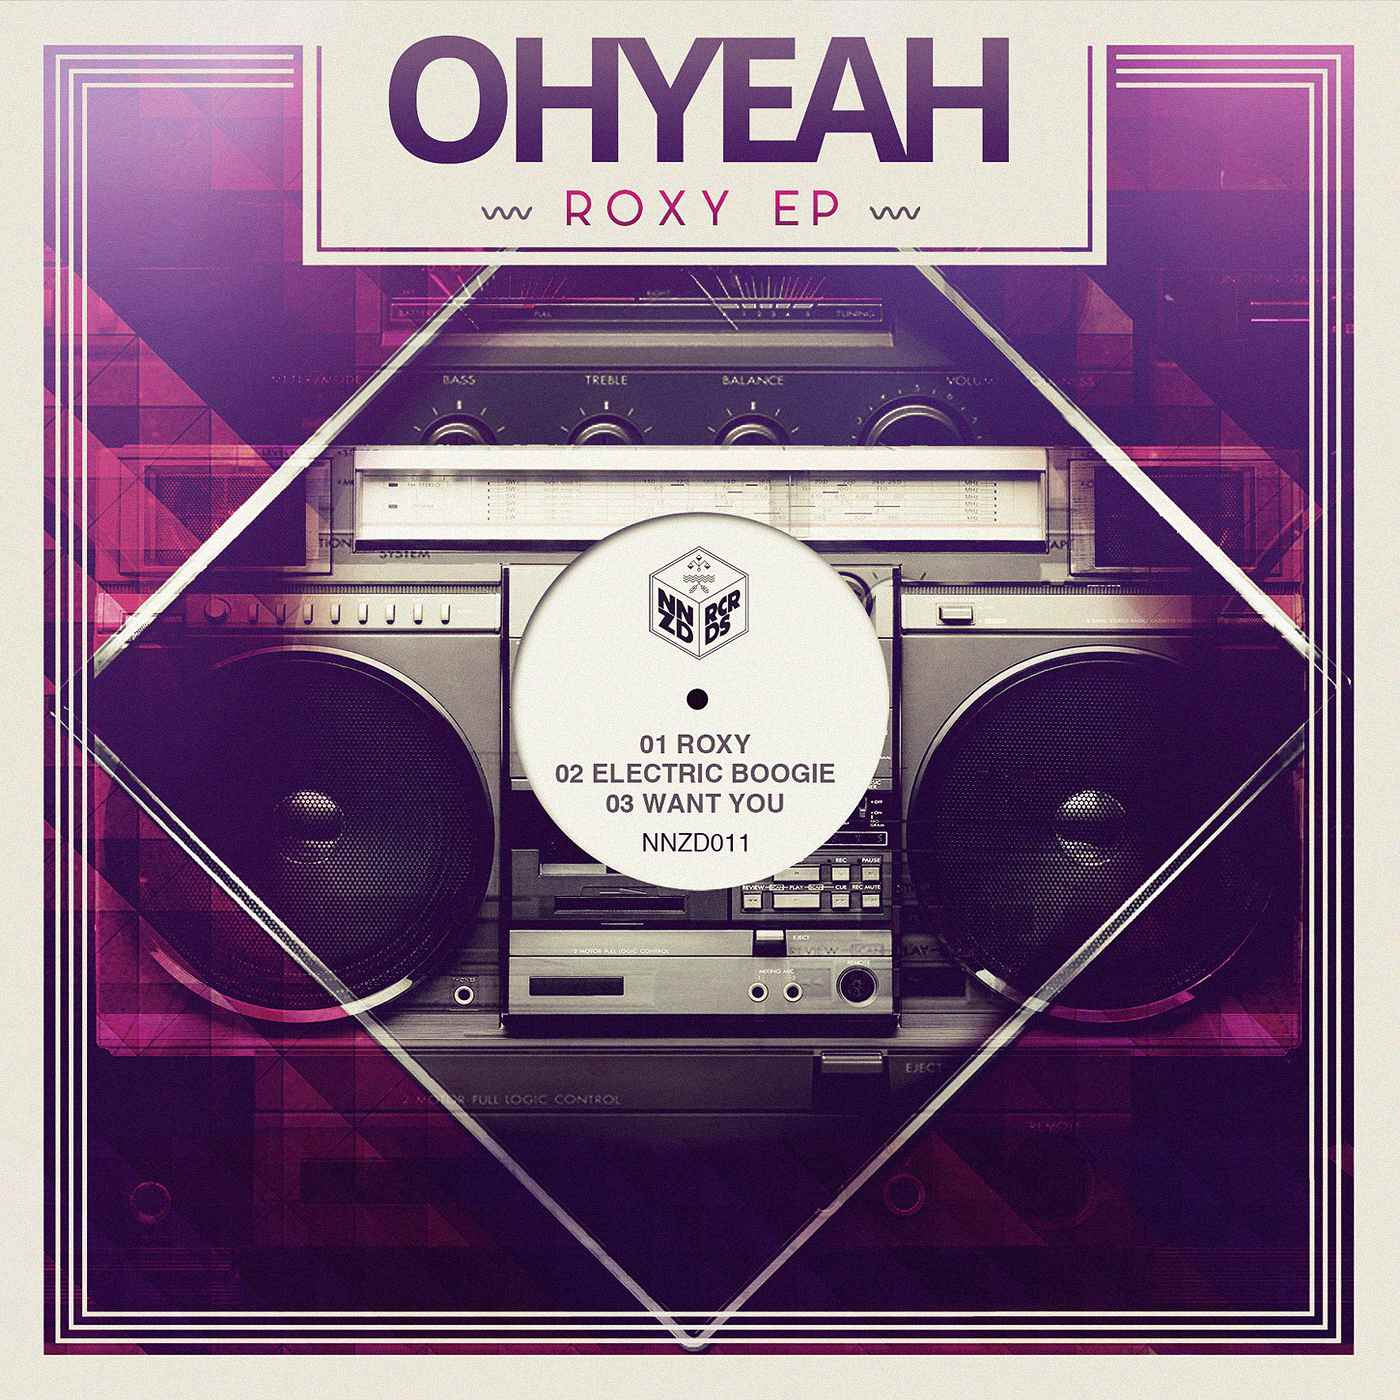 OHYEAH - Roxy EP 2 COVER 1400x1400